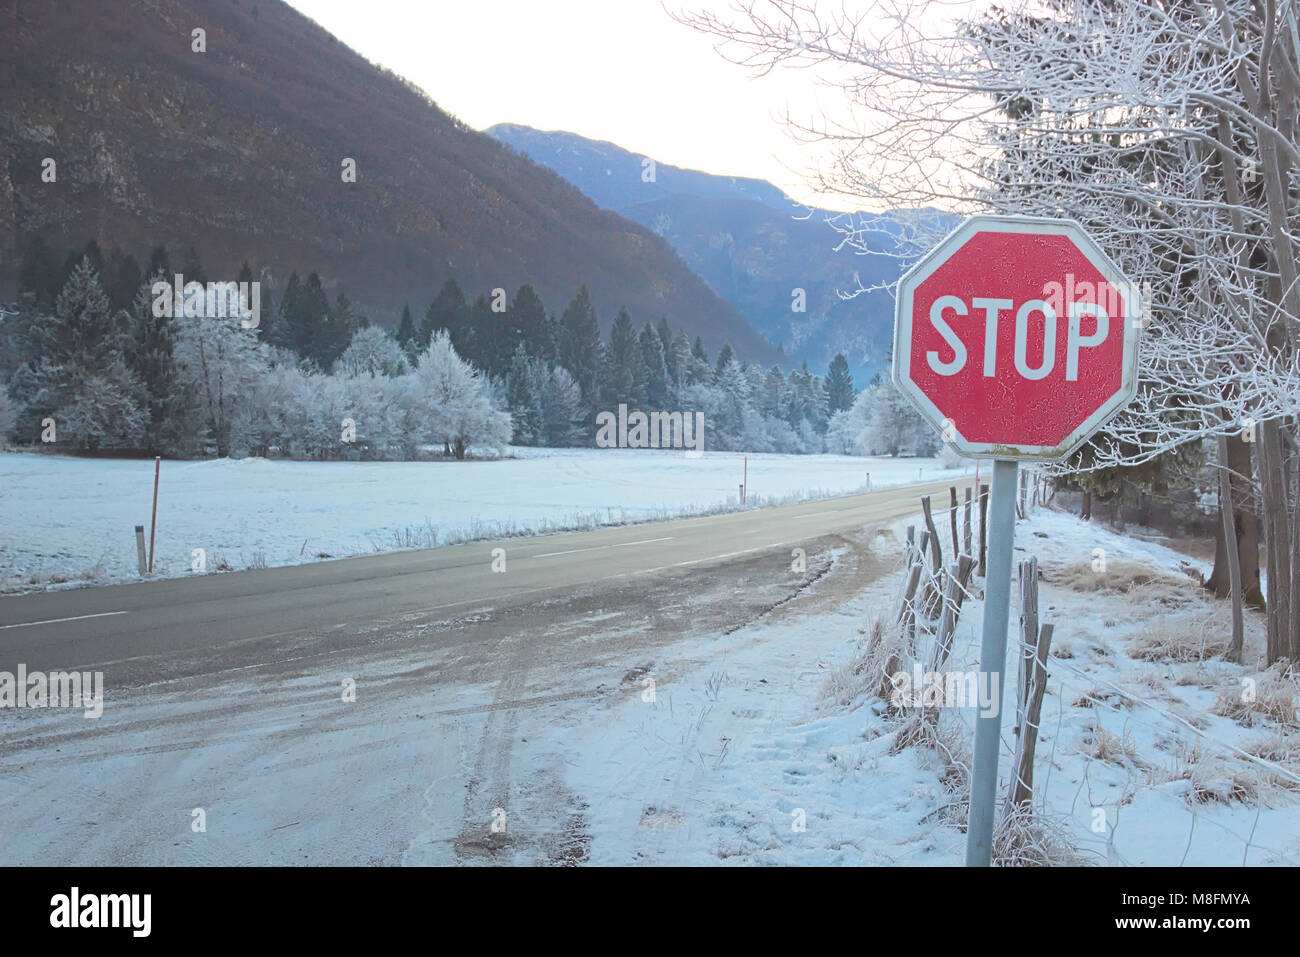 Traffic Stop Sign on Snowy Road - Stock Image